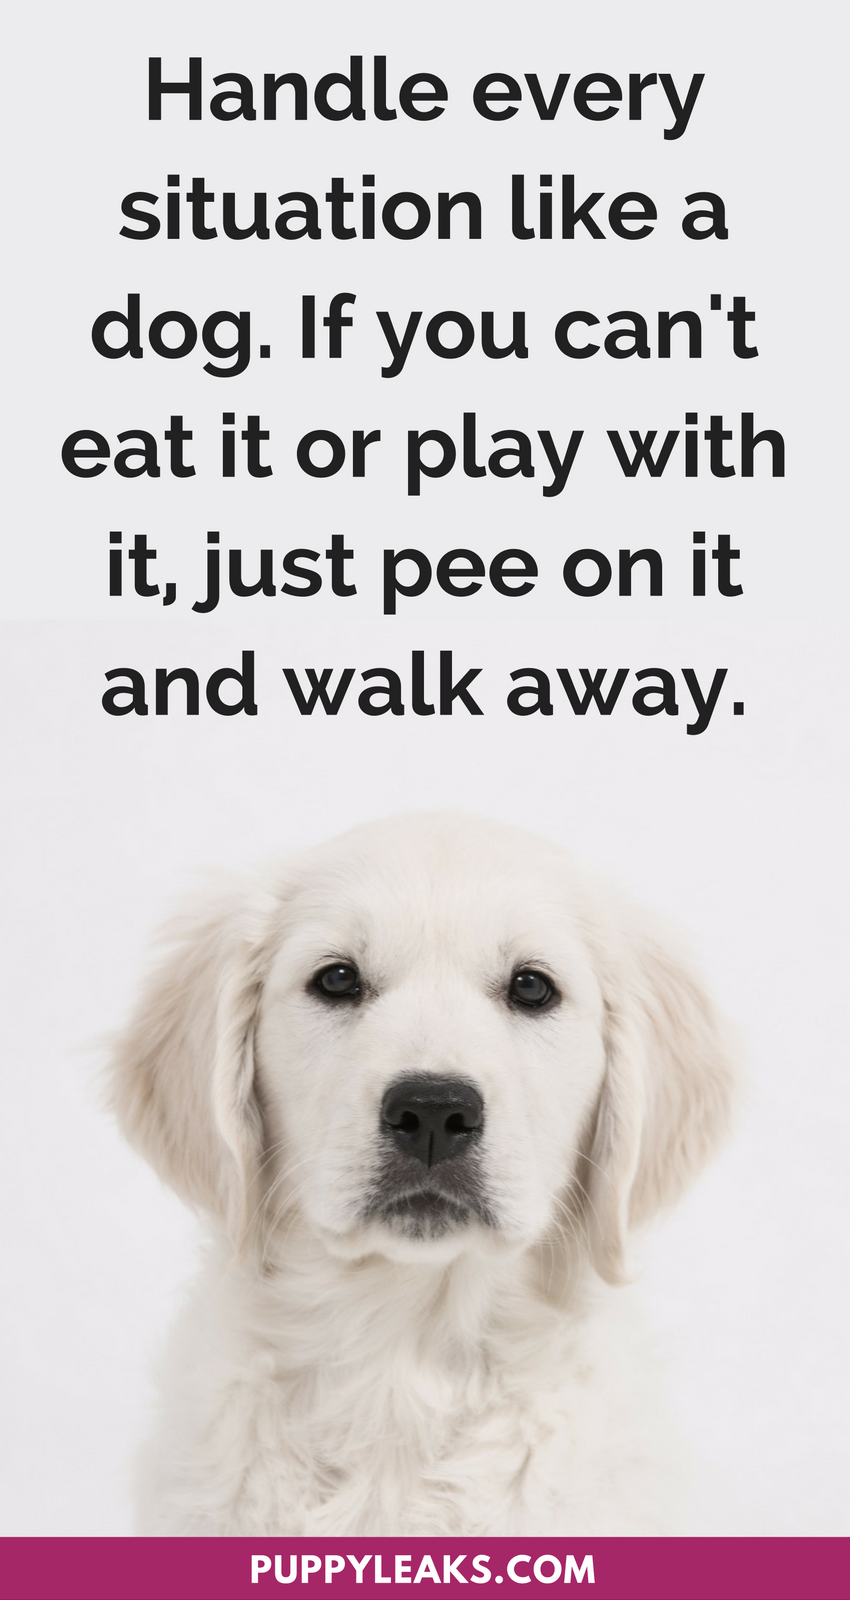 30 Cute Amp Funny Dog Quotes Dogs Amp Puppies Dog Quotes